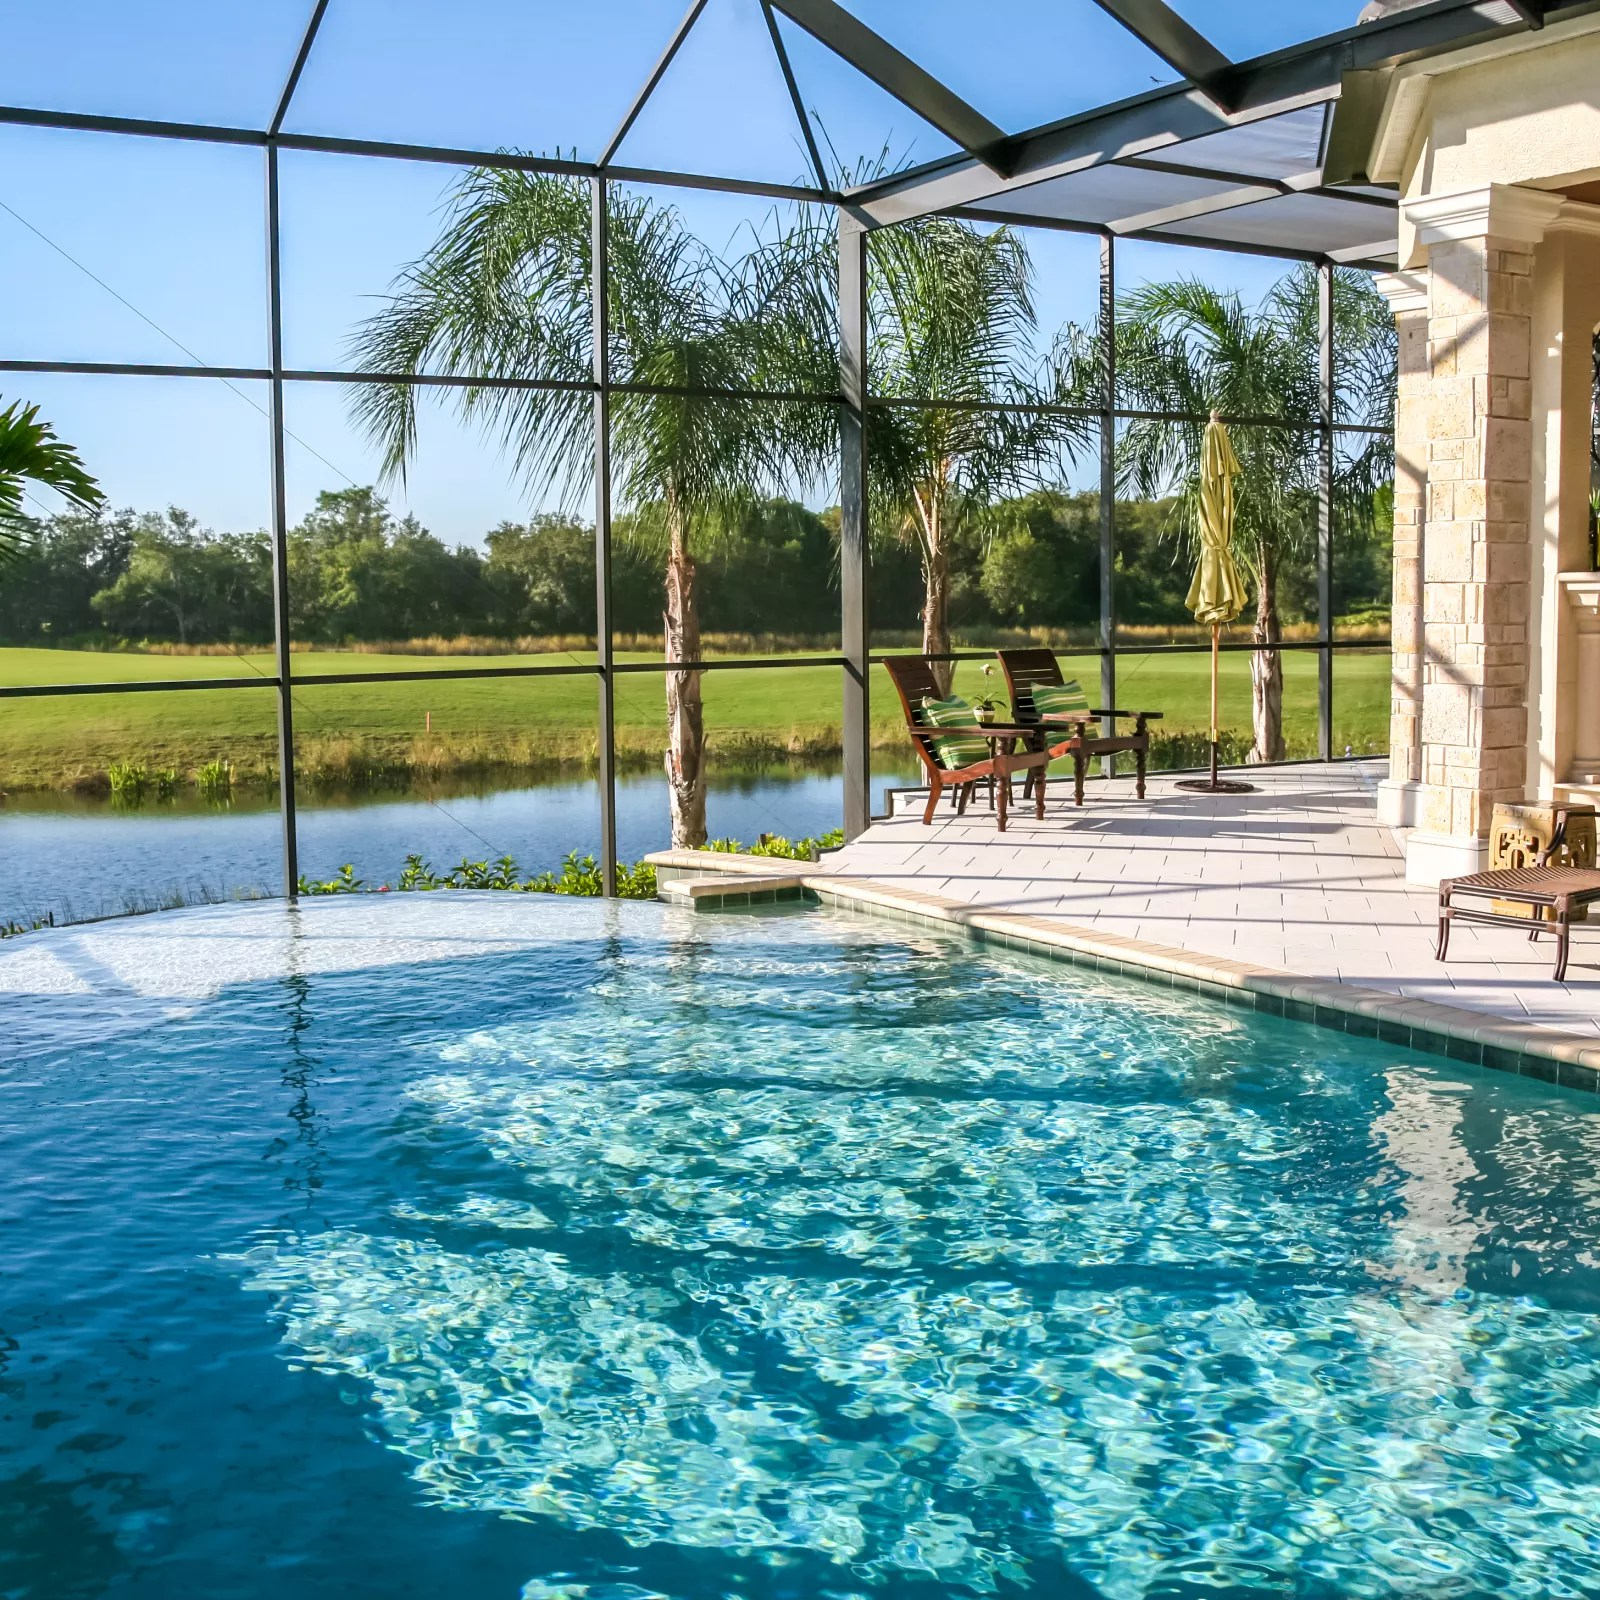 Jacuzzi Pool Covers How A Pool Affects Your Homeowners Insurance Valuepenguin